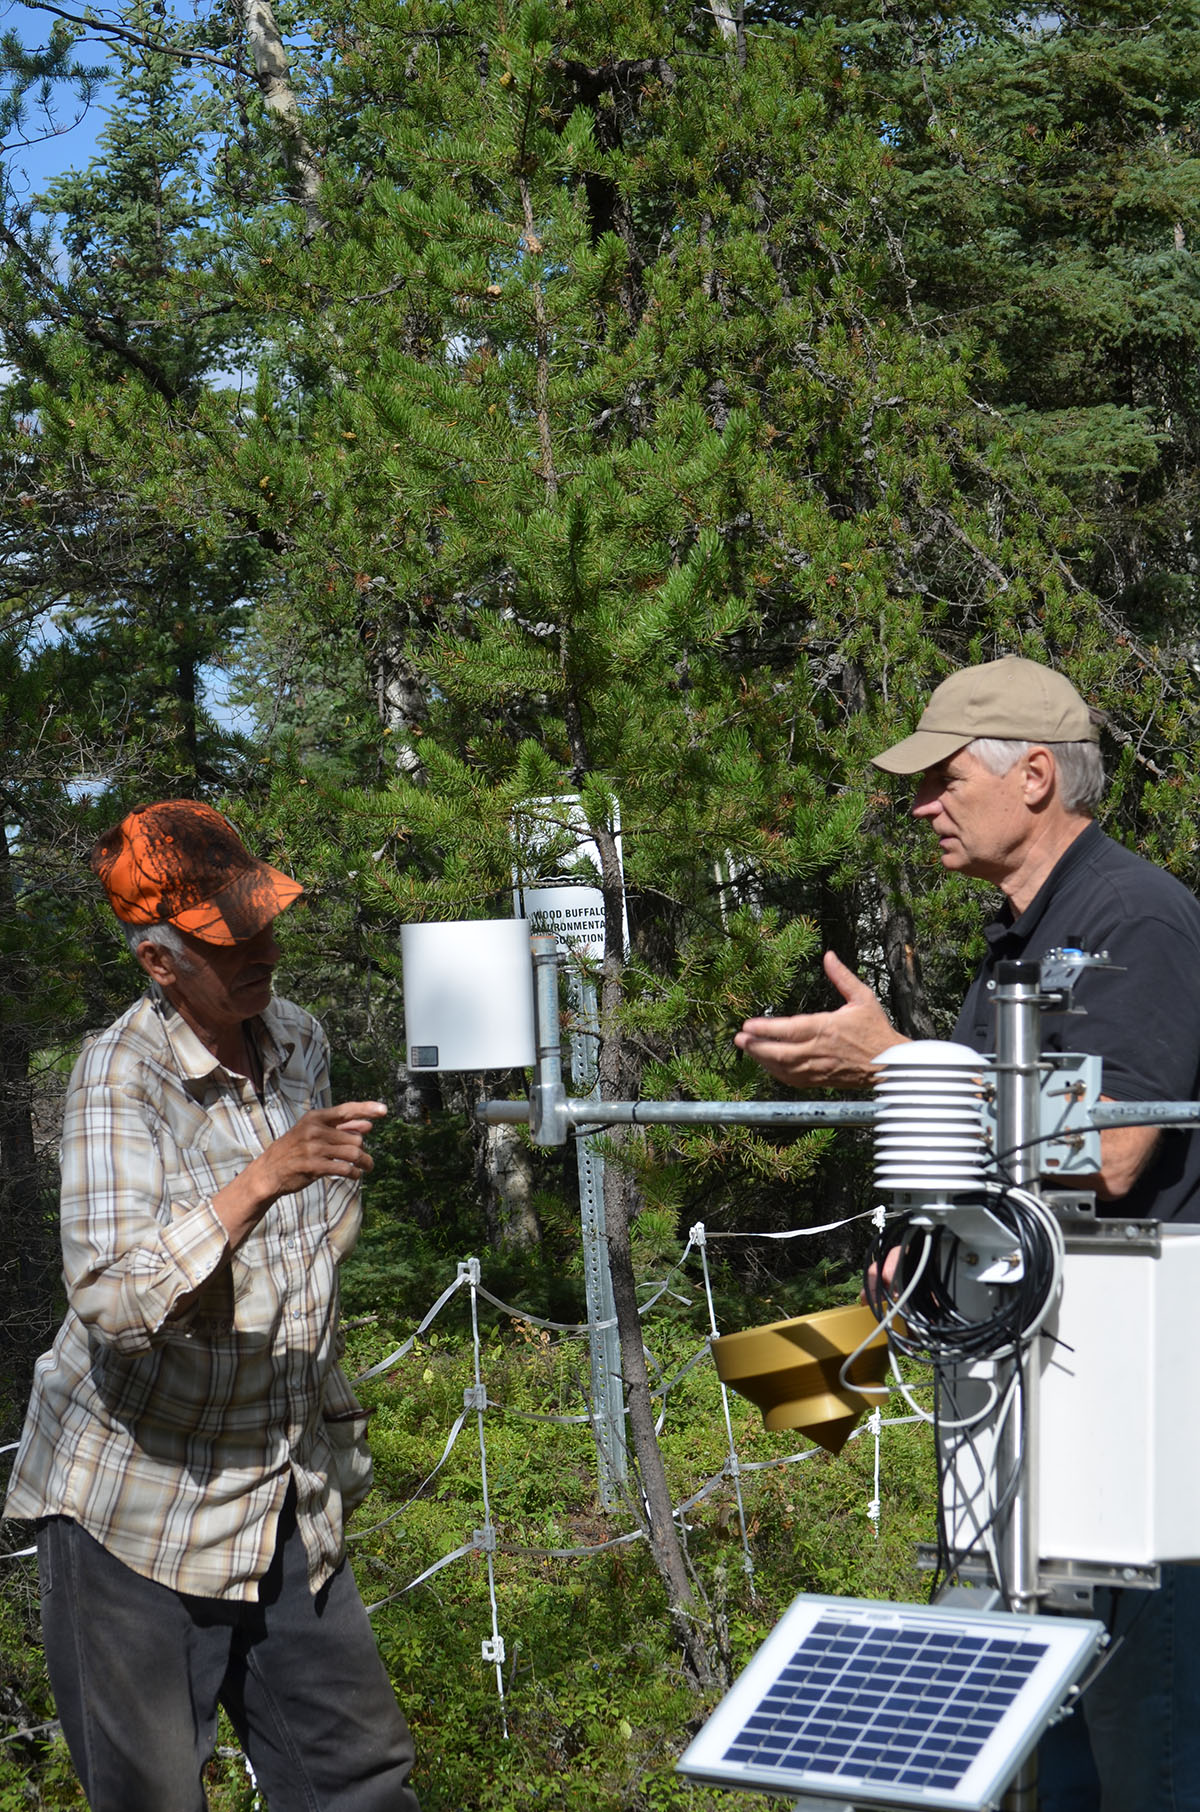 Howard Lacorde (left) and Kevin Percy (right) discuss the passive air monitoring and meteorological equipment at one of five monitored Berry Focus Group berry patches.